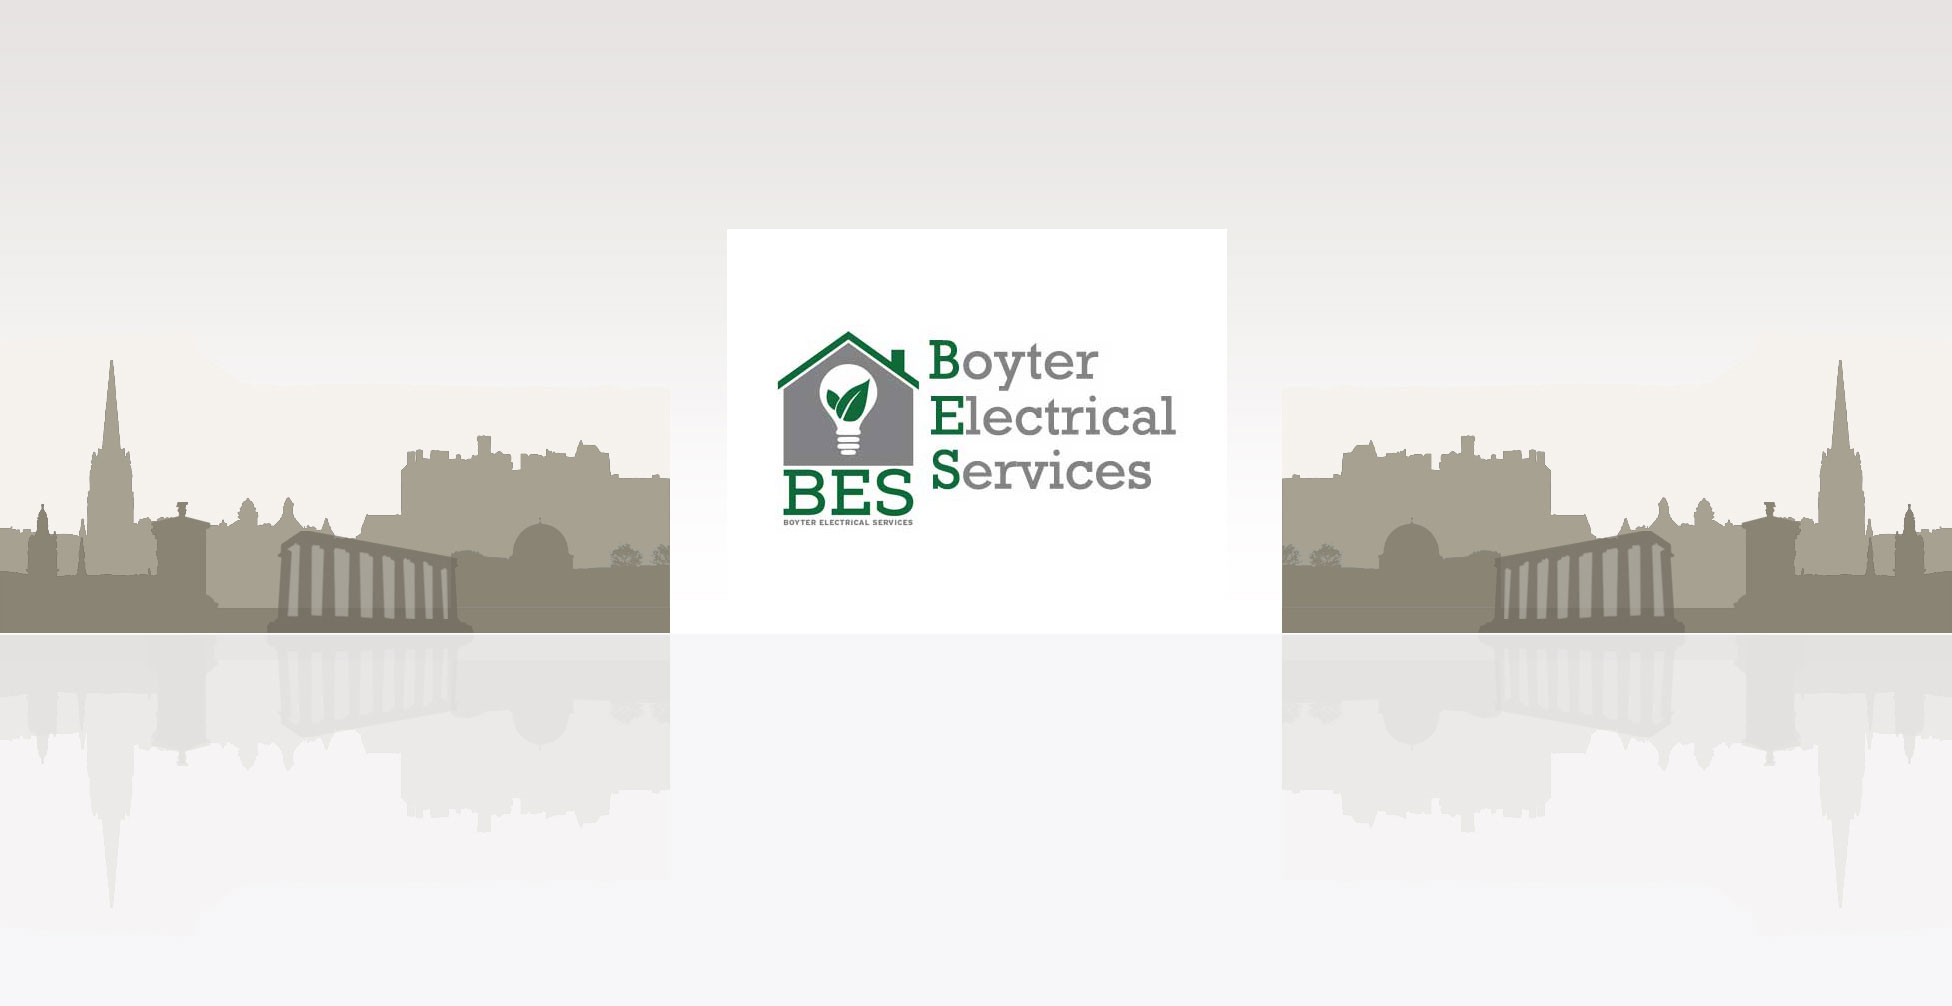 Boyter Electrical Services Ltd